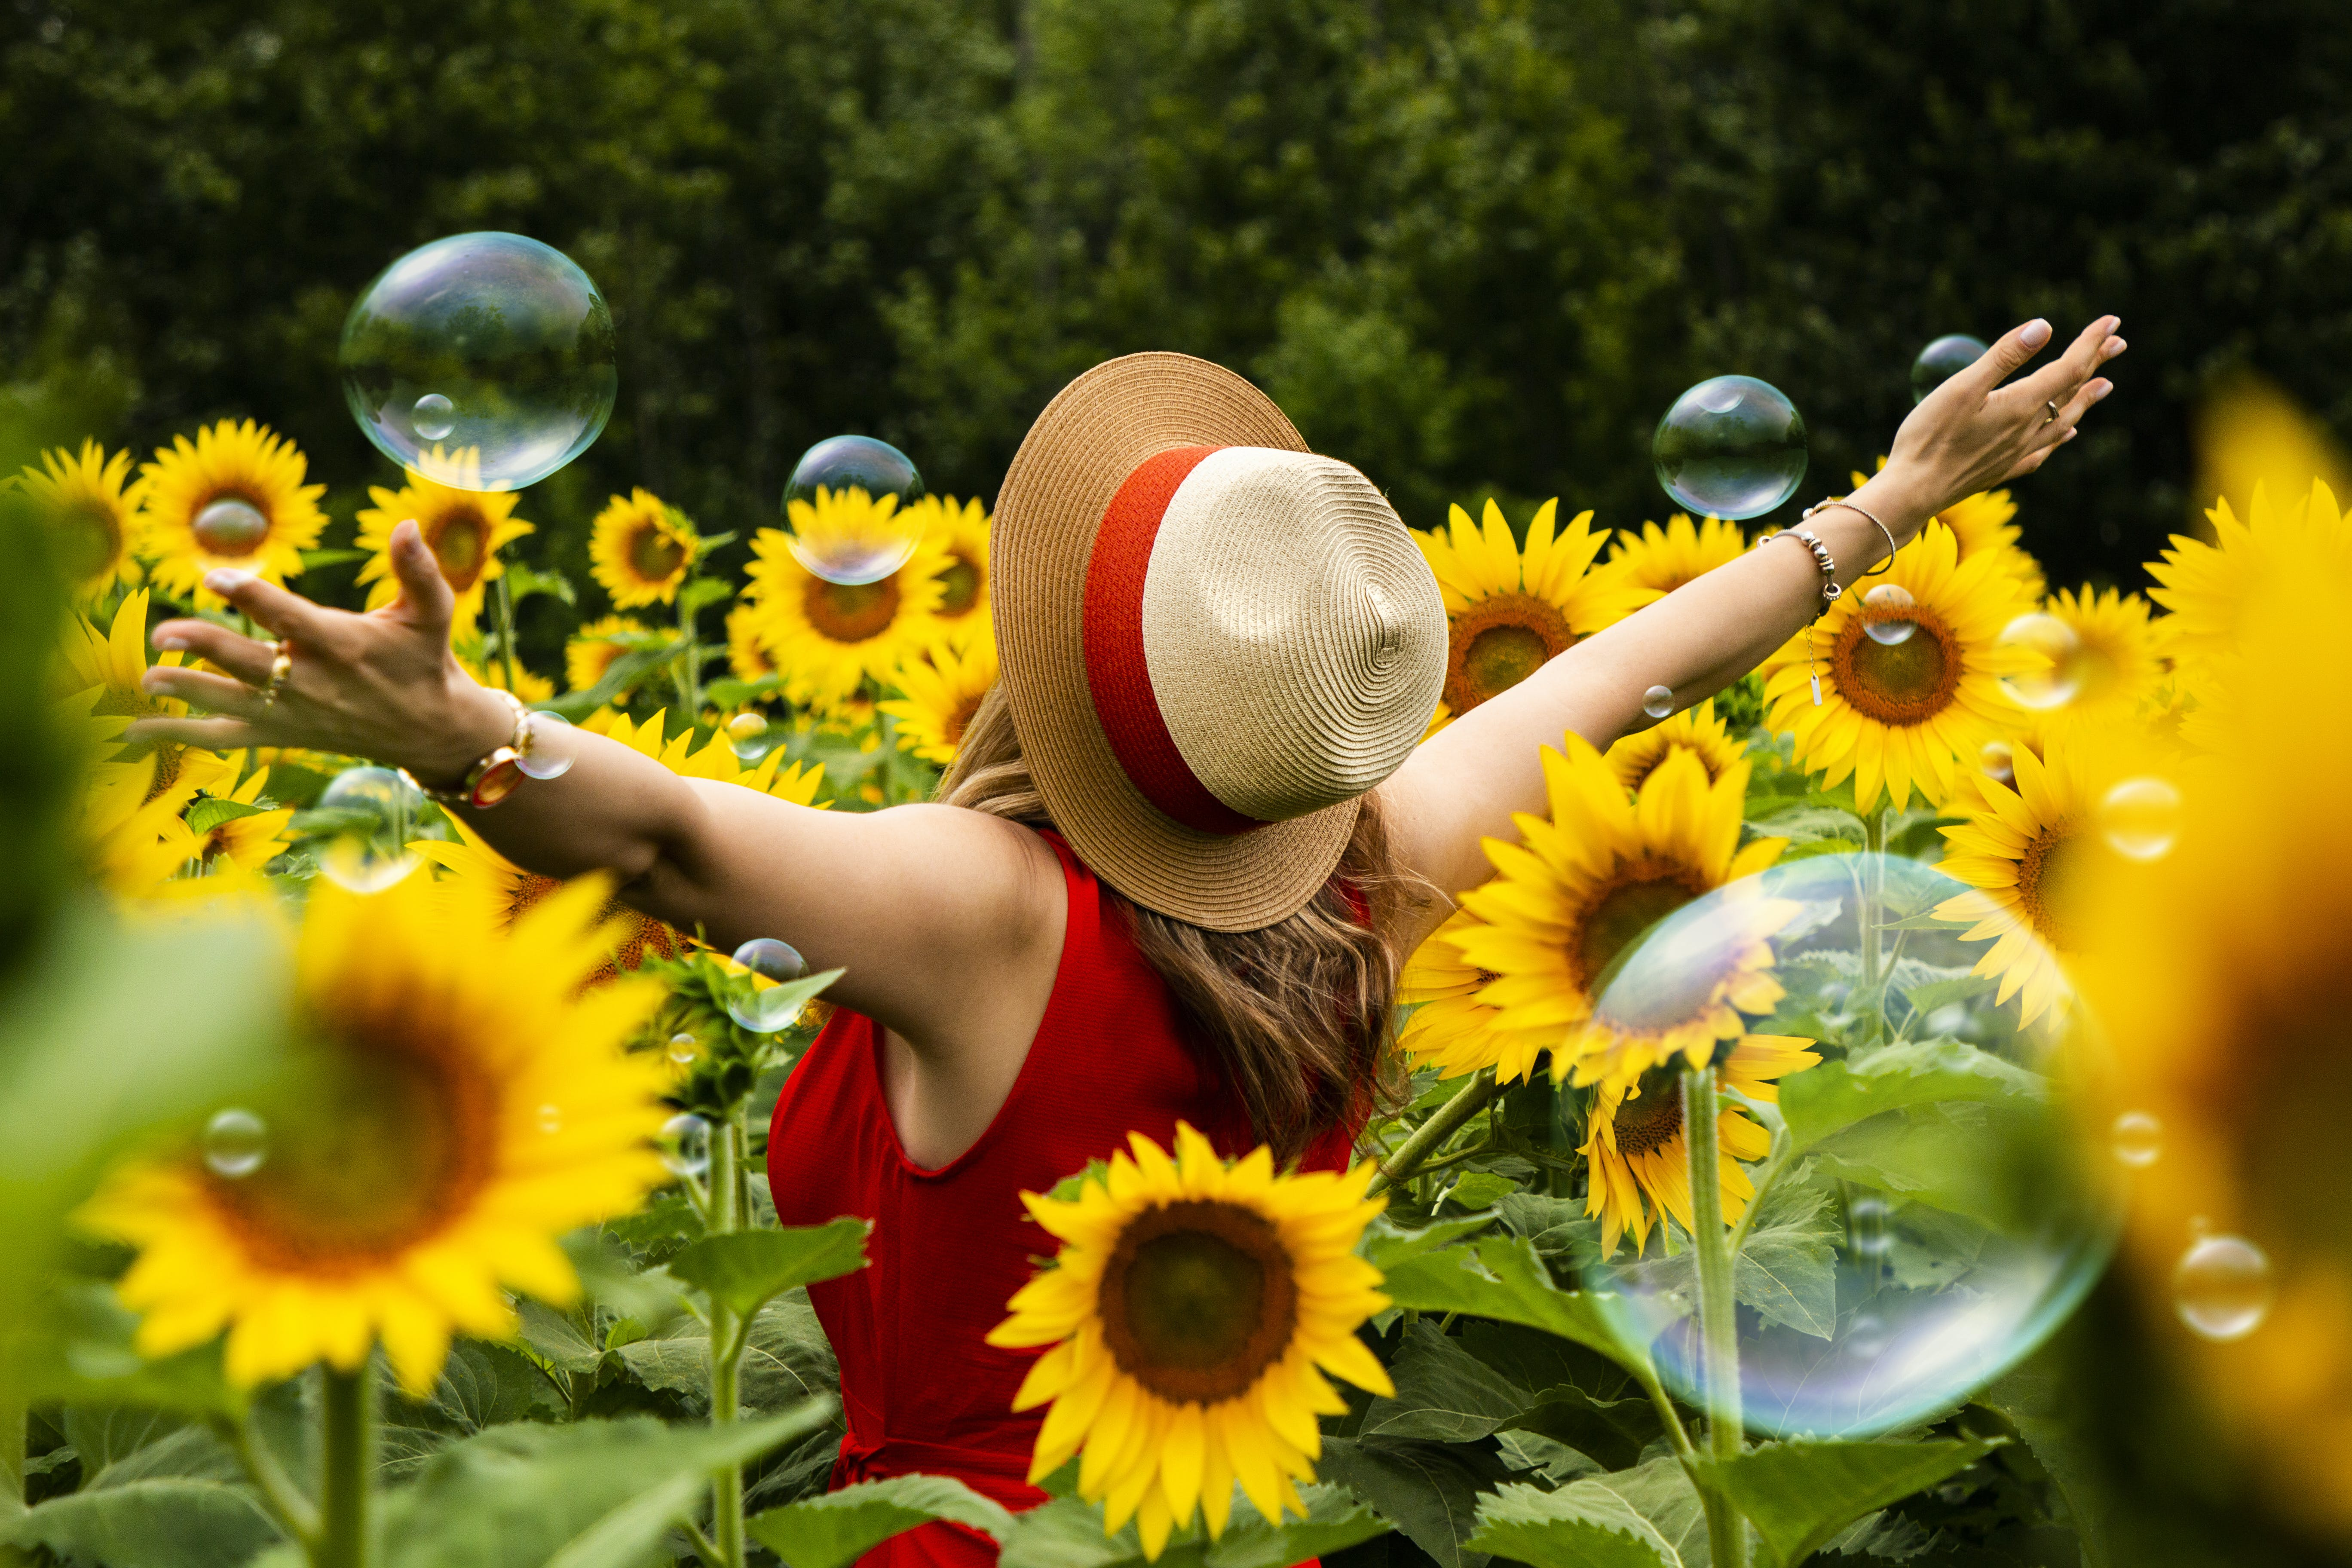 Woman Wearing Straw Hat Standing in Bed of Sunflowers